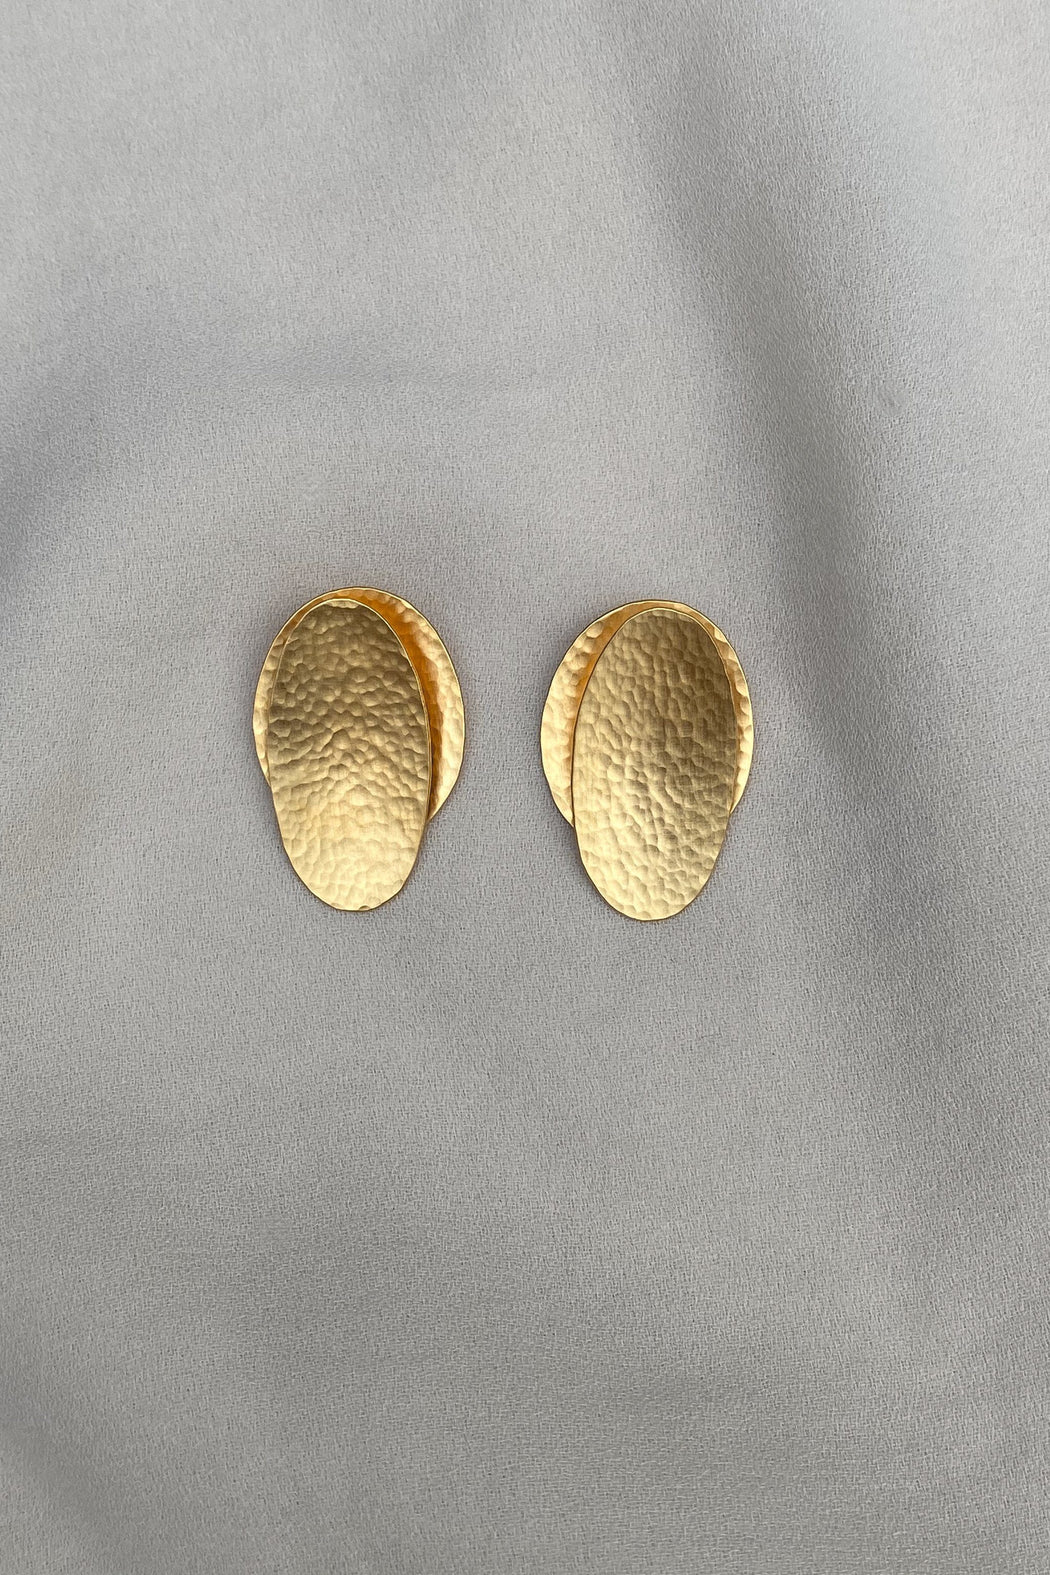 BAIUSHKI OVAL LEAF earrings